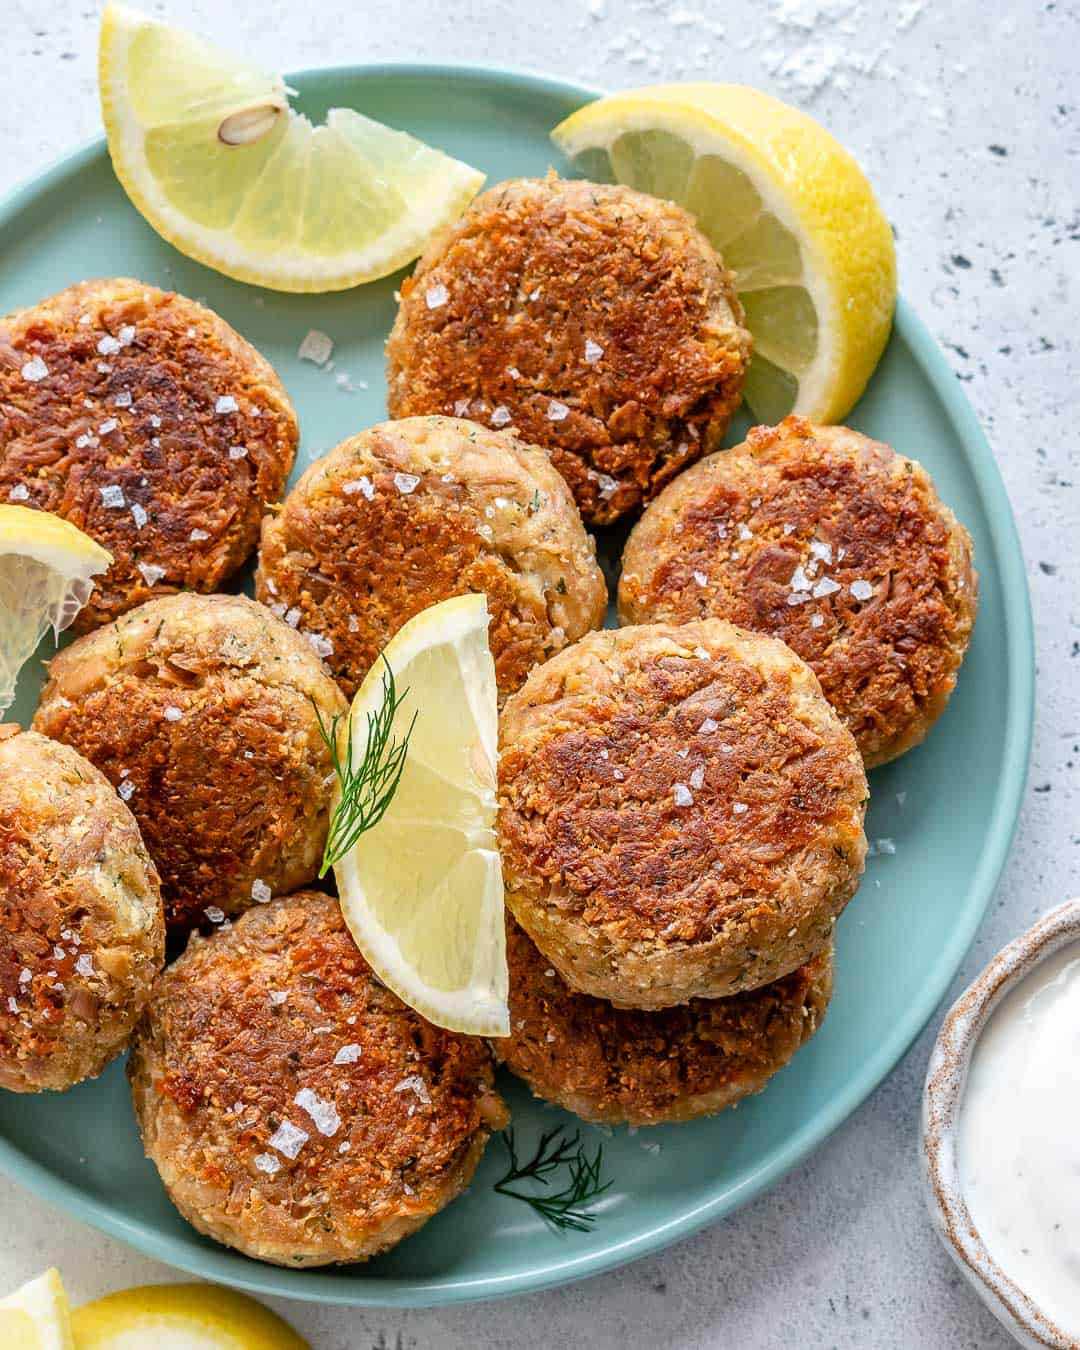 tuna patties on a plate with dill and lemon wedges garnishes